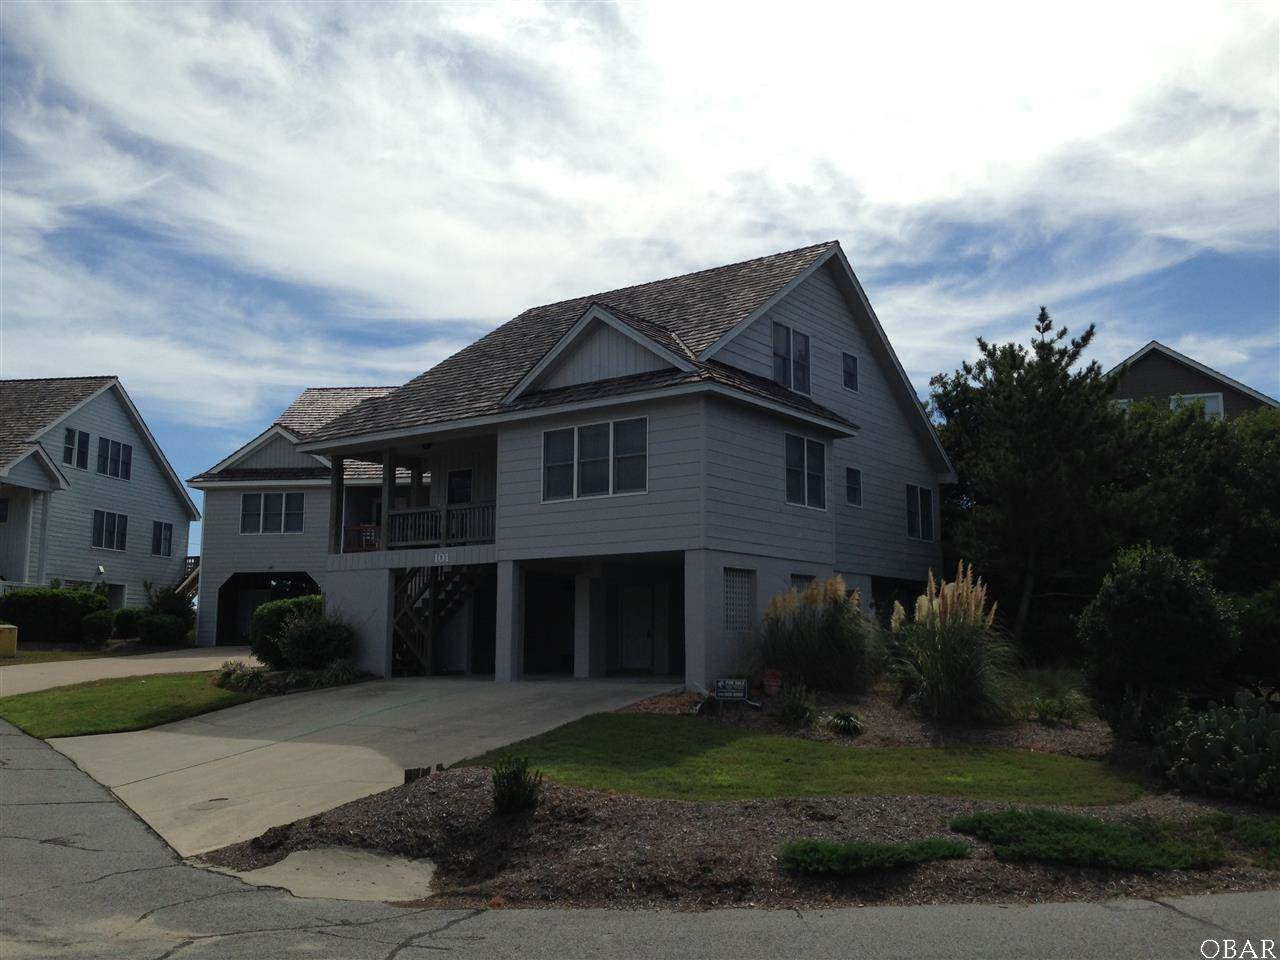 nags head dating Book your nags head rentals with the team at joe lamb jr & associates - we have oceanfront vacation rentals for you to enjoy in the outer banks.